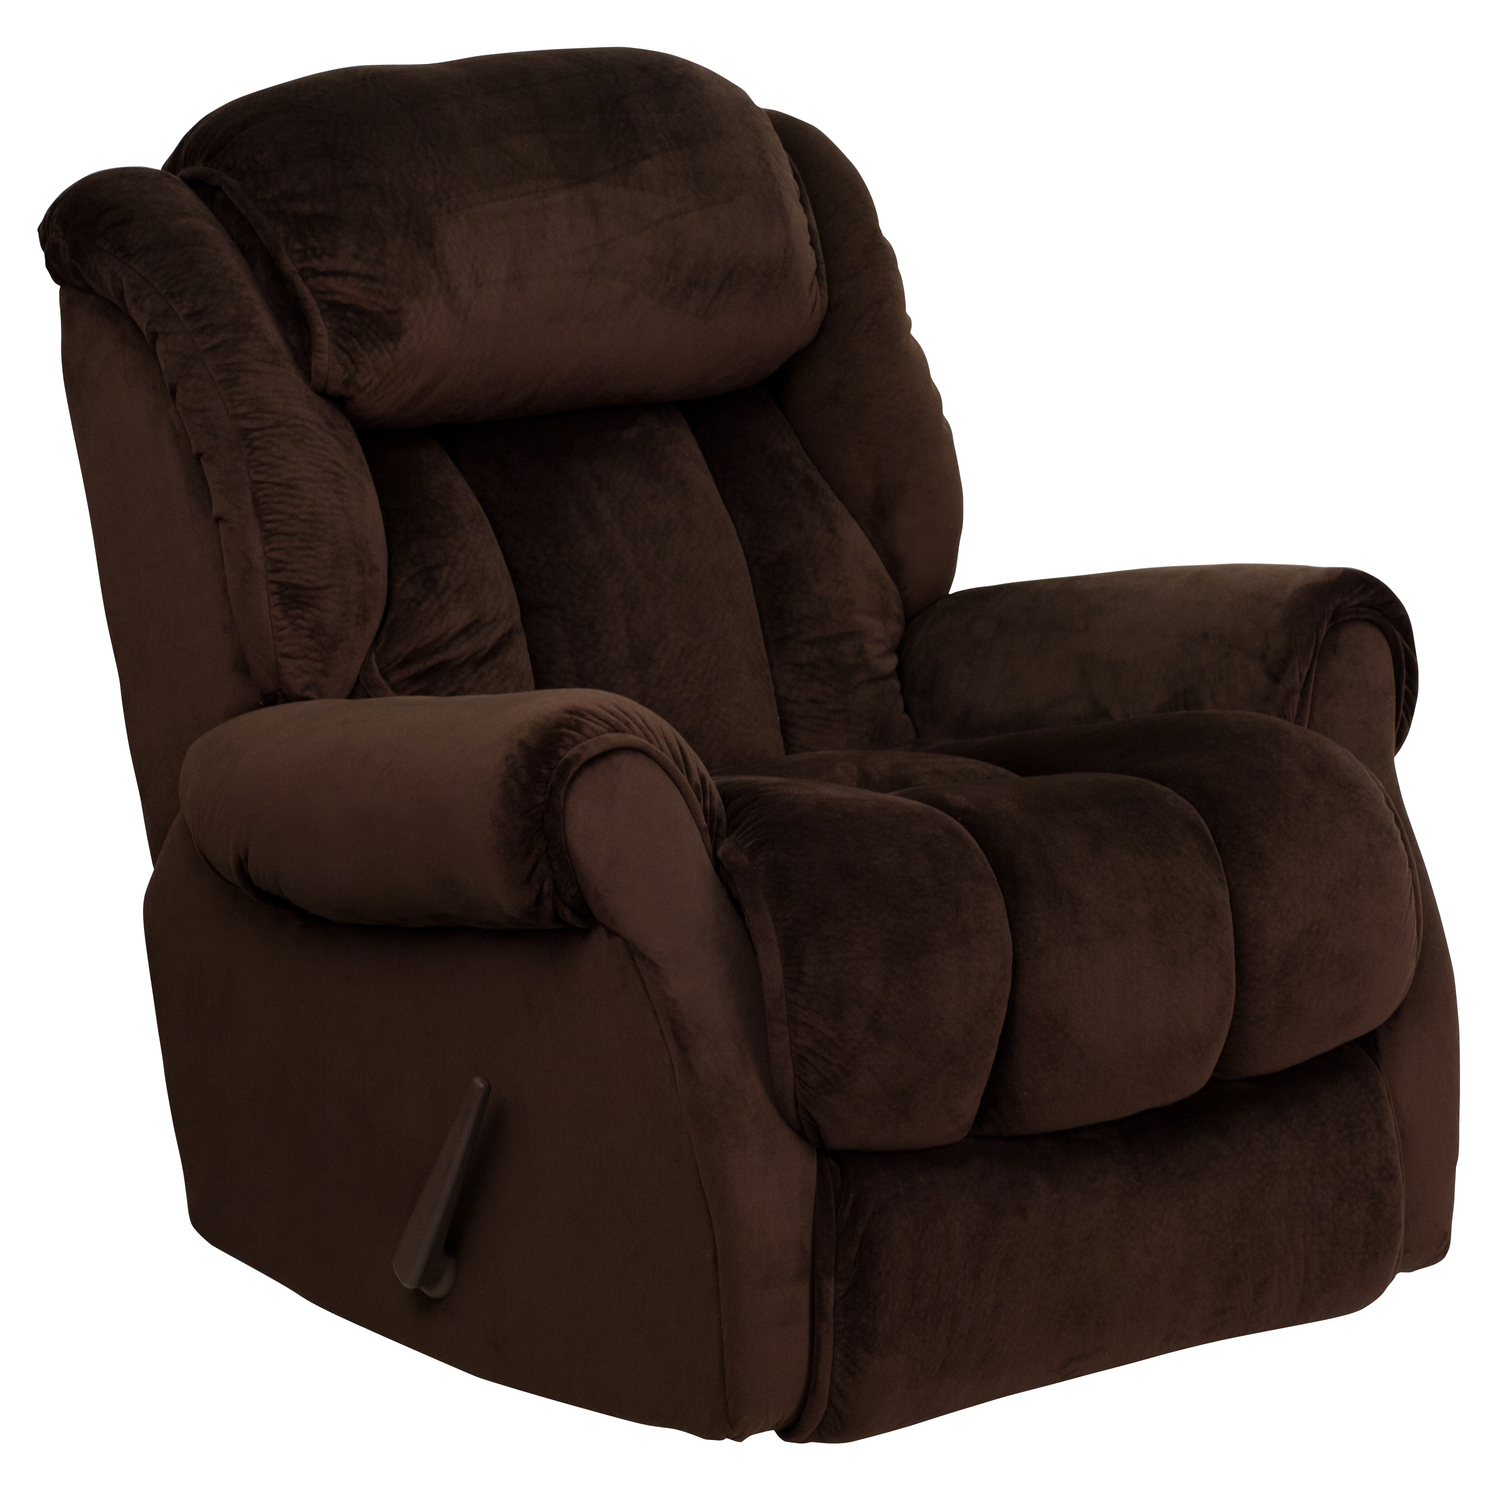 leggett and platt chair parts cover hire west london flash furniture contemporary champion microfiber chaise